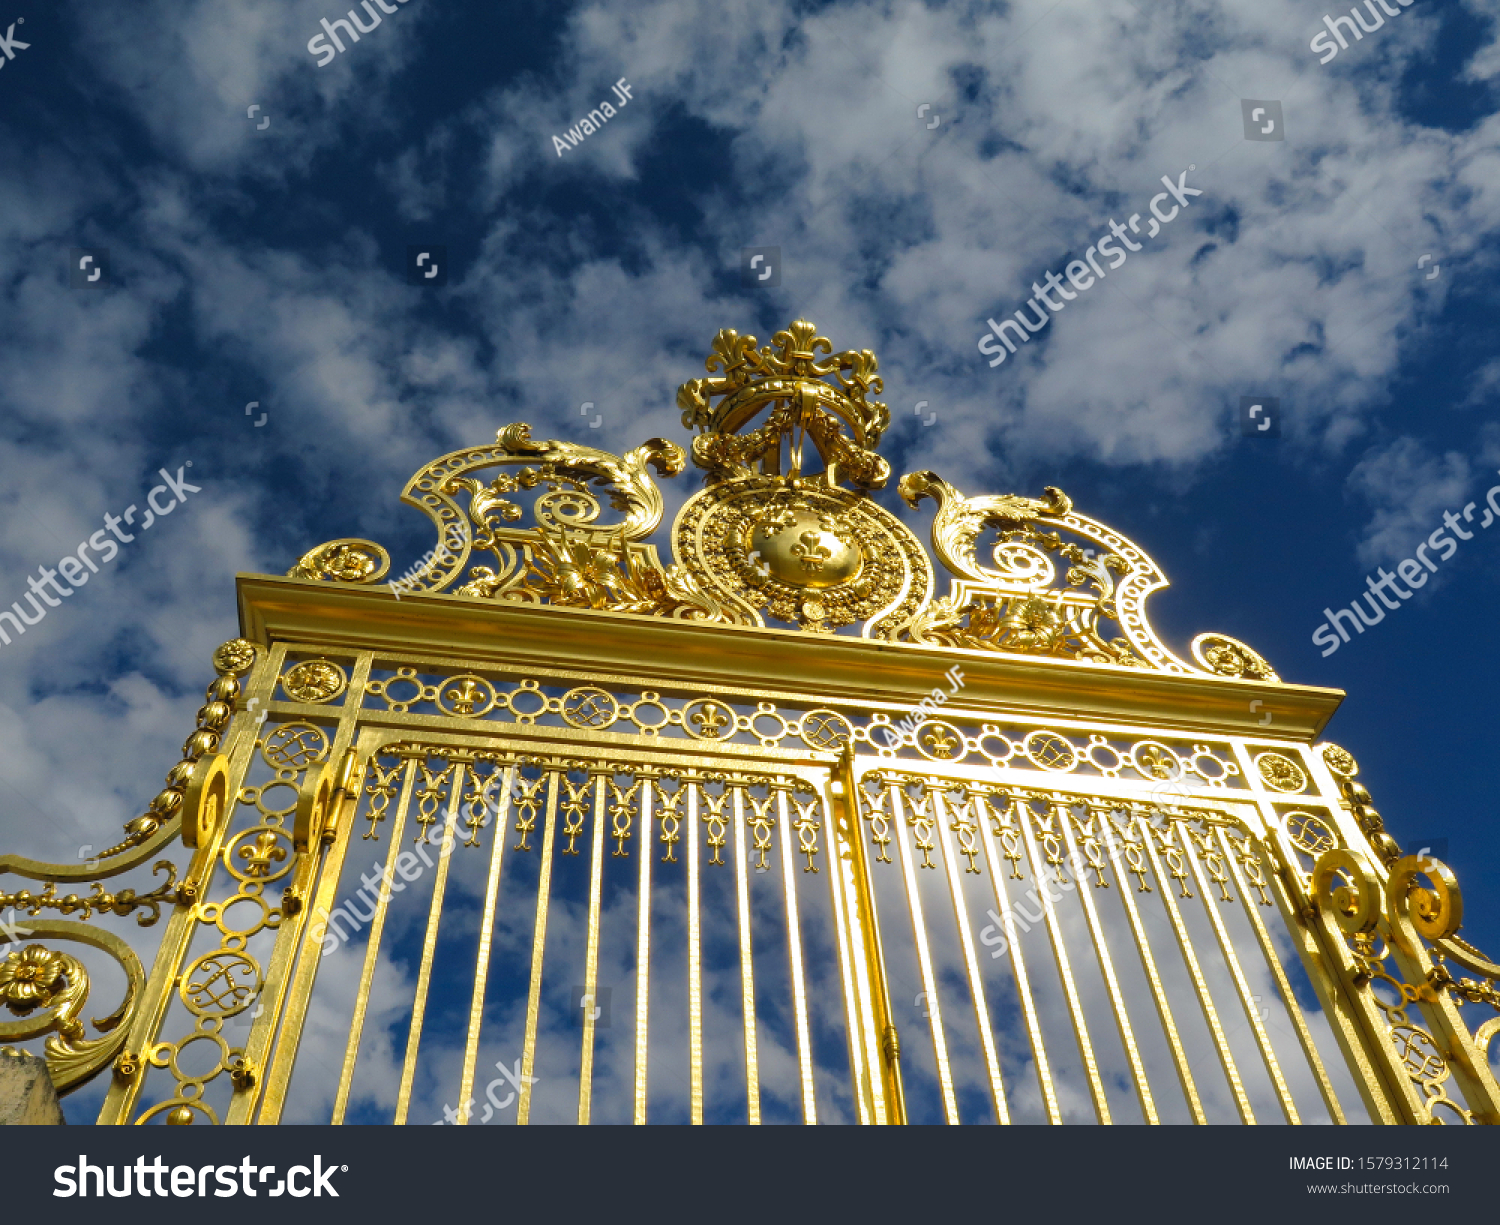 stock-photo-golden-entrance-gate-of-the-